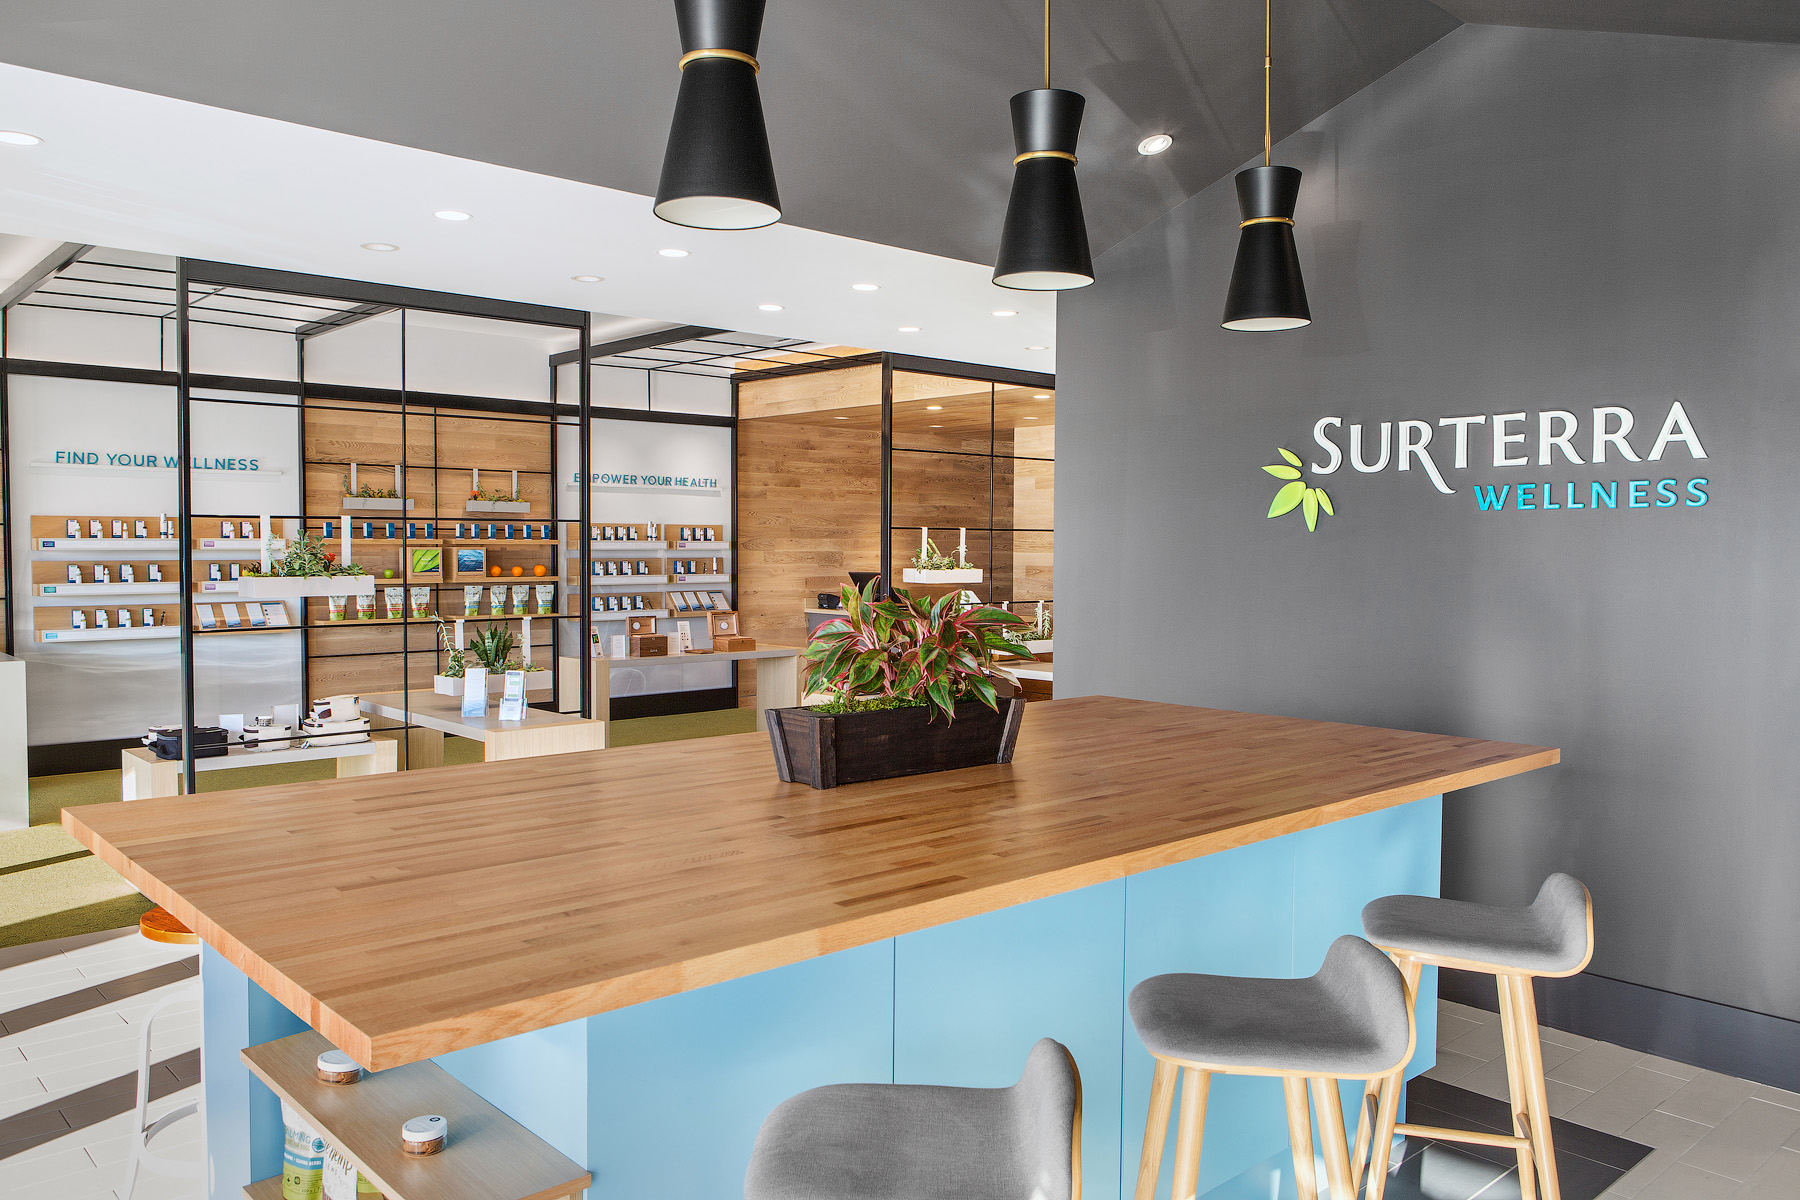 Surterra kitchen with wood-top island and grey wall behind featuring Surterra logo